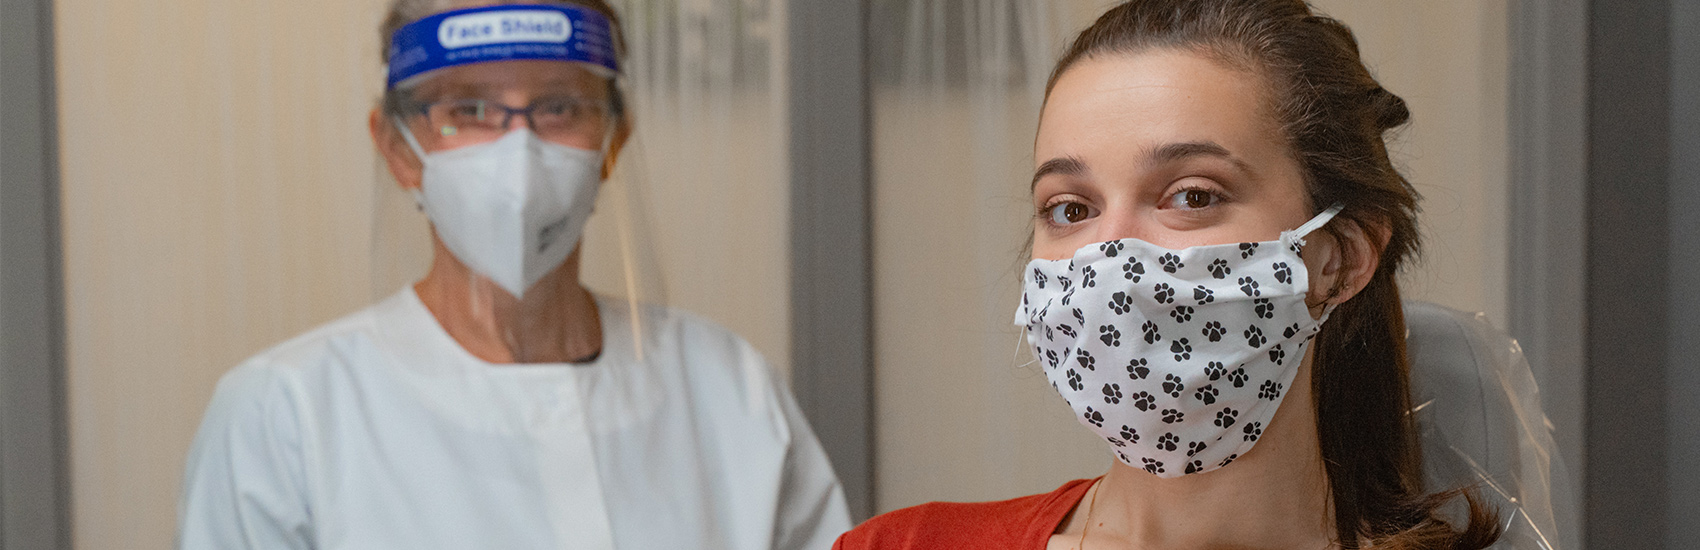 orthodontist with face shield mask